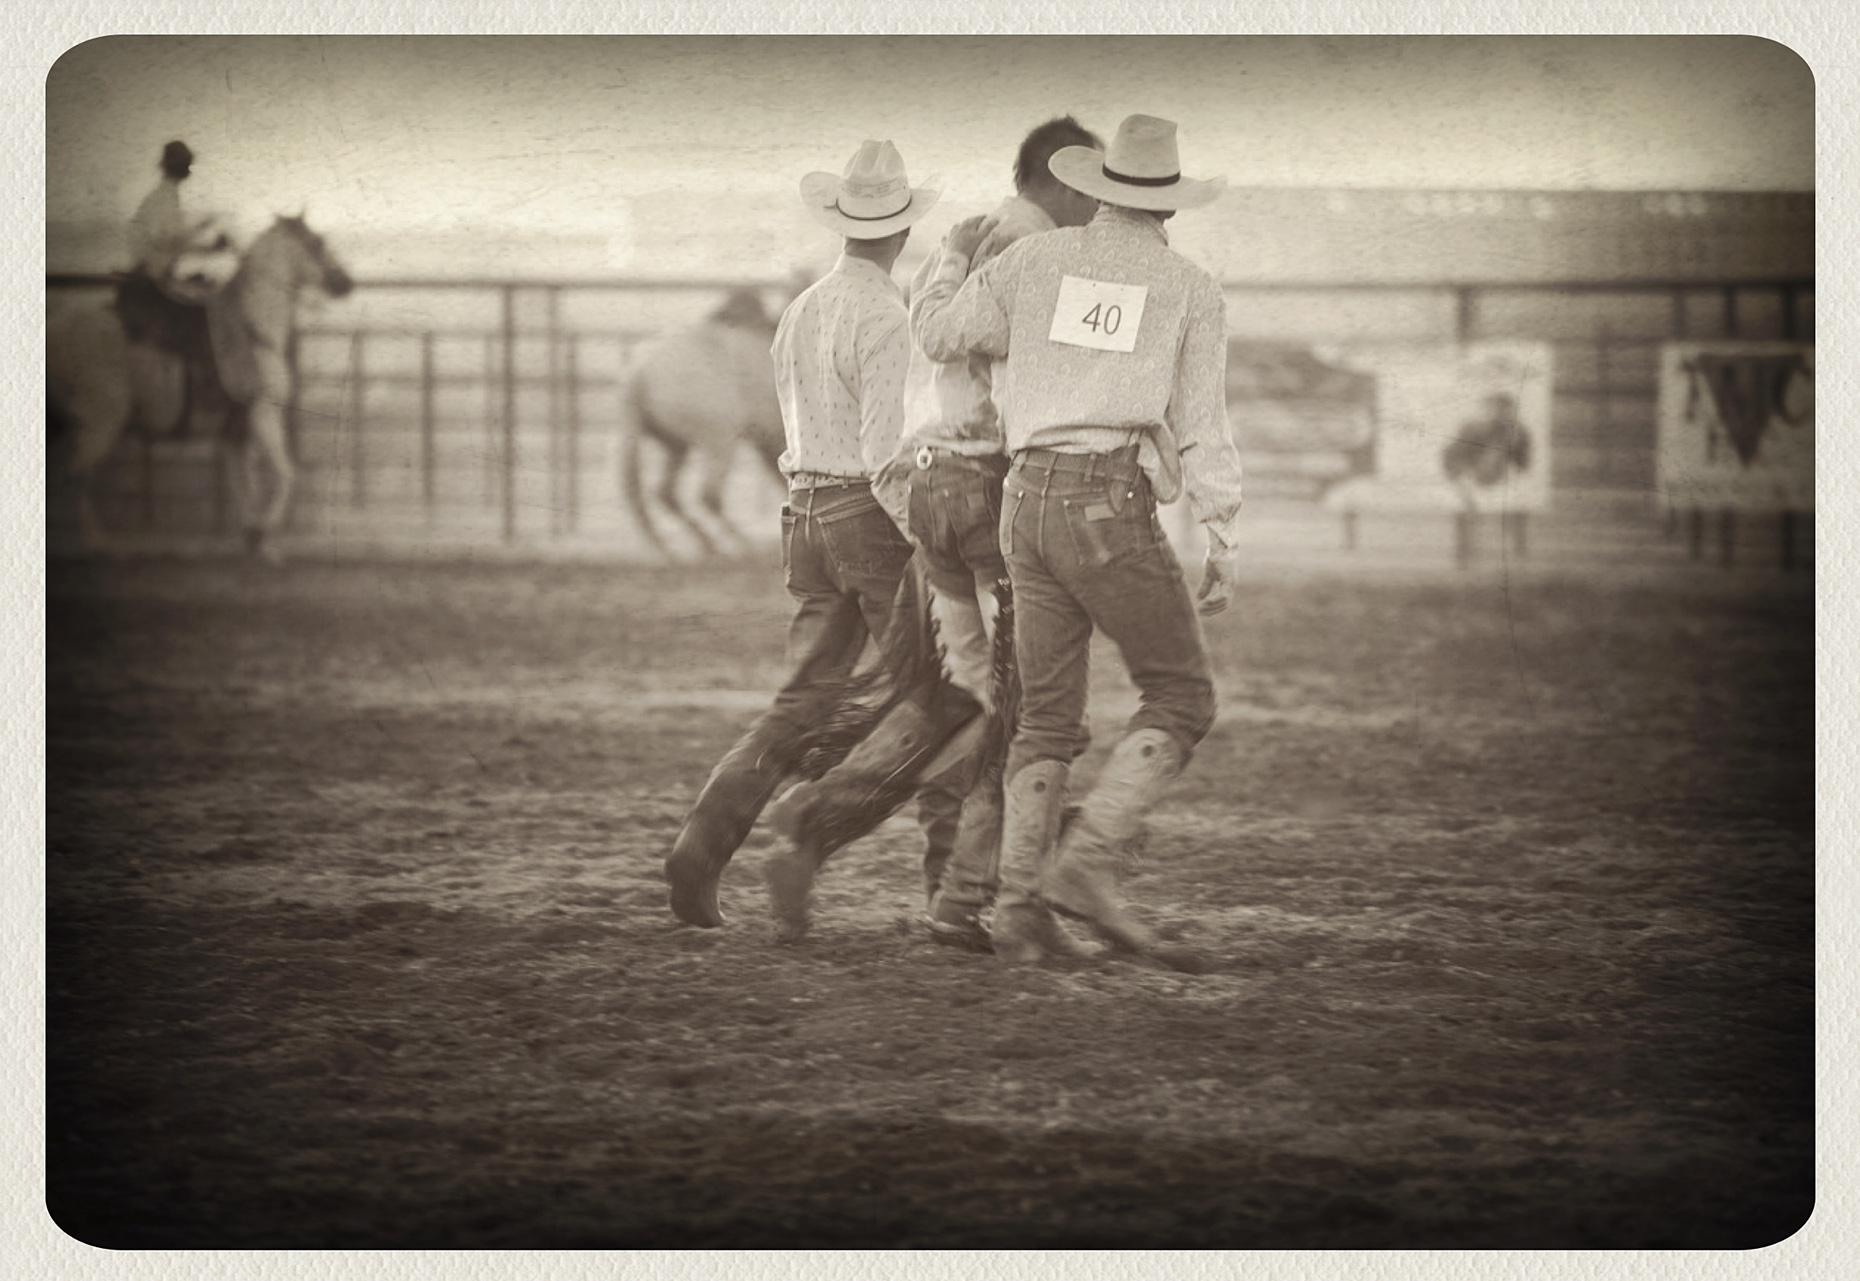 Cowboy in a rodeo arena in Bozeman, Montana